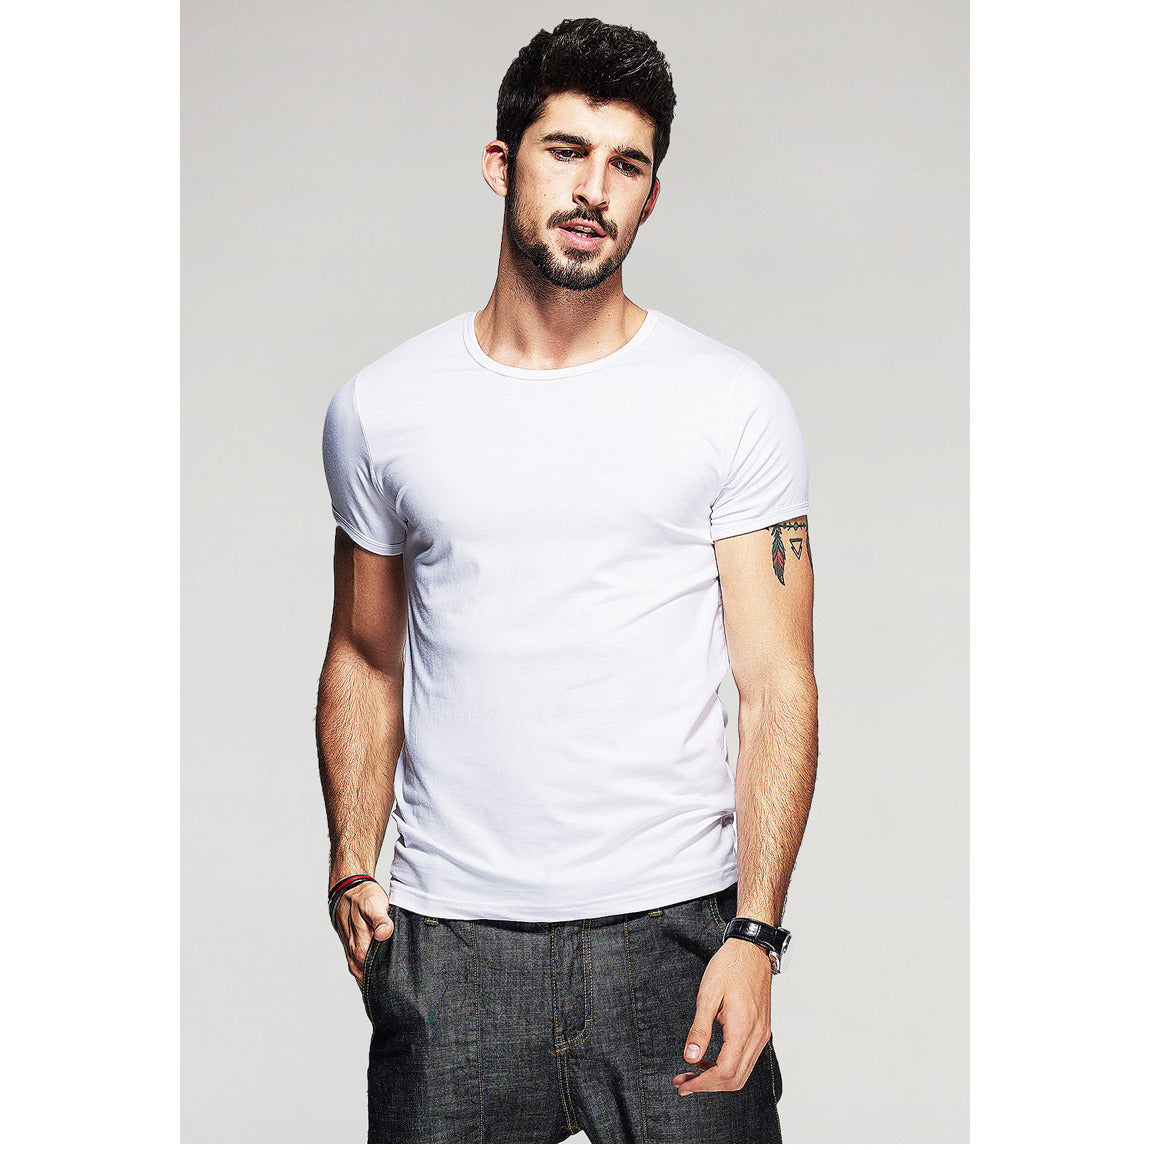 White Basic Slim Fit Crew Neck T-Shirt - Haberfasher